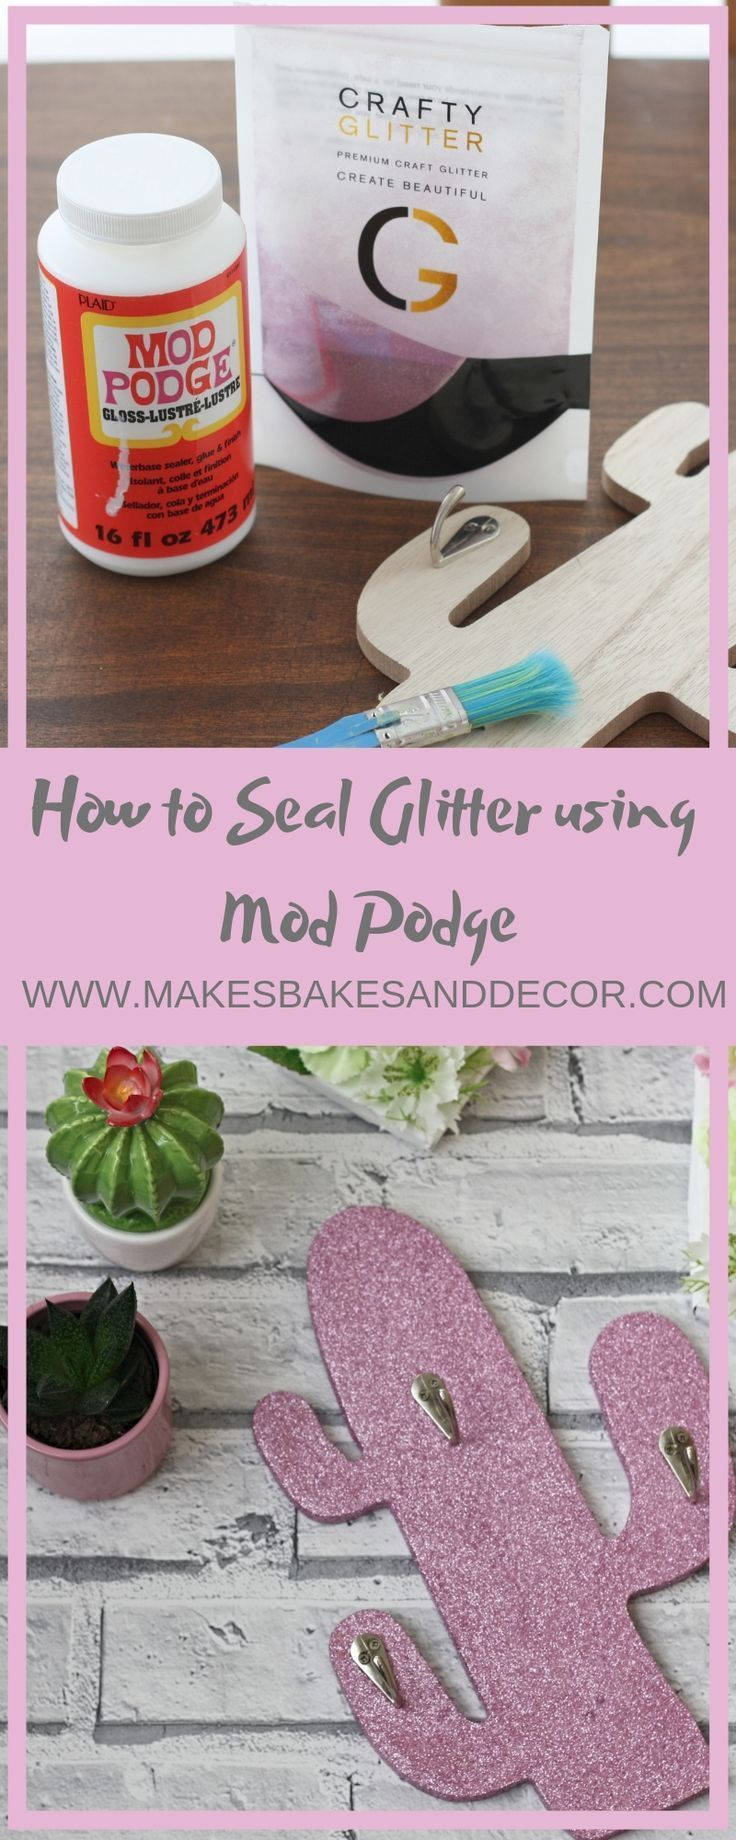 How to Seal Glitter using Mod Podge Makes, Bakes and